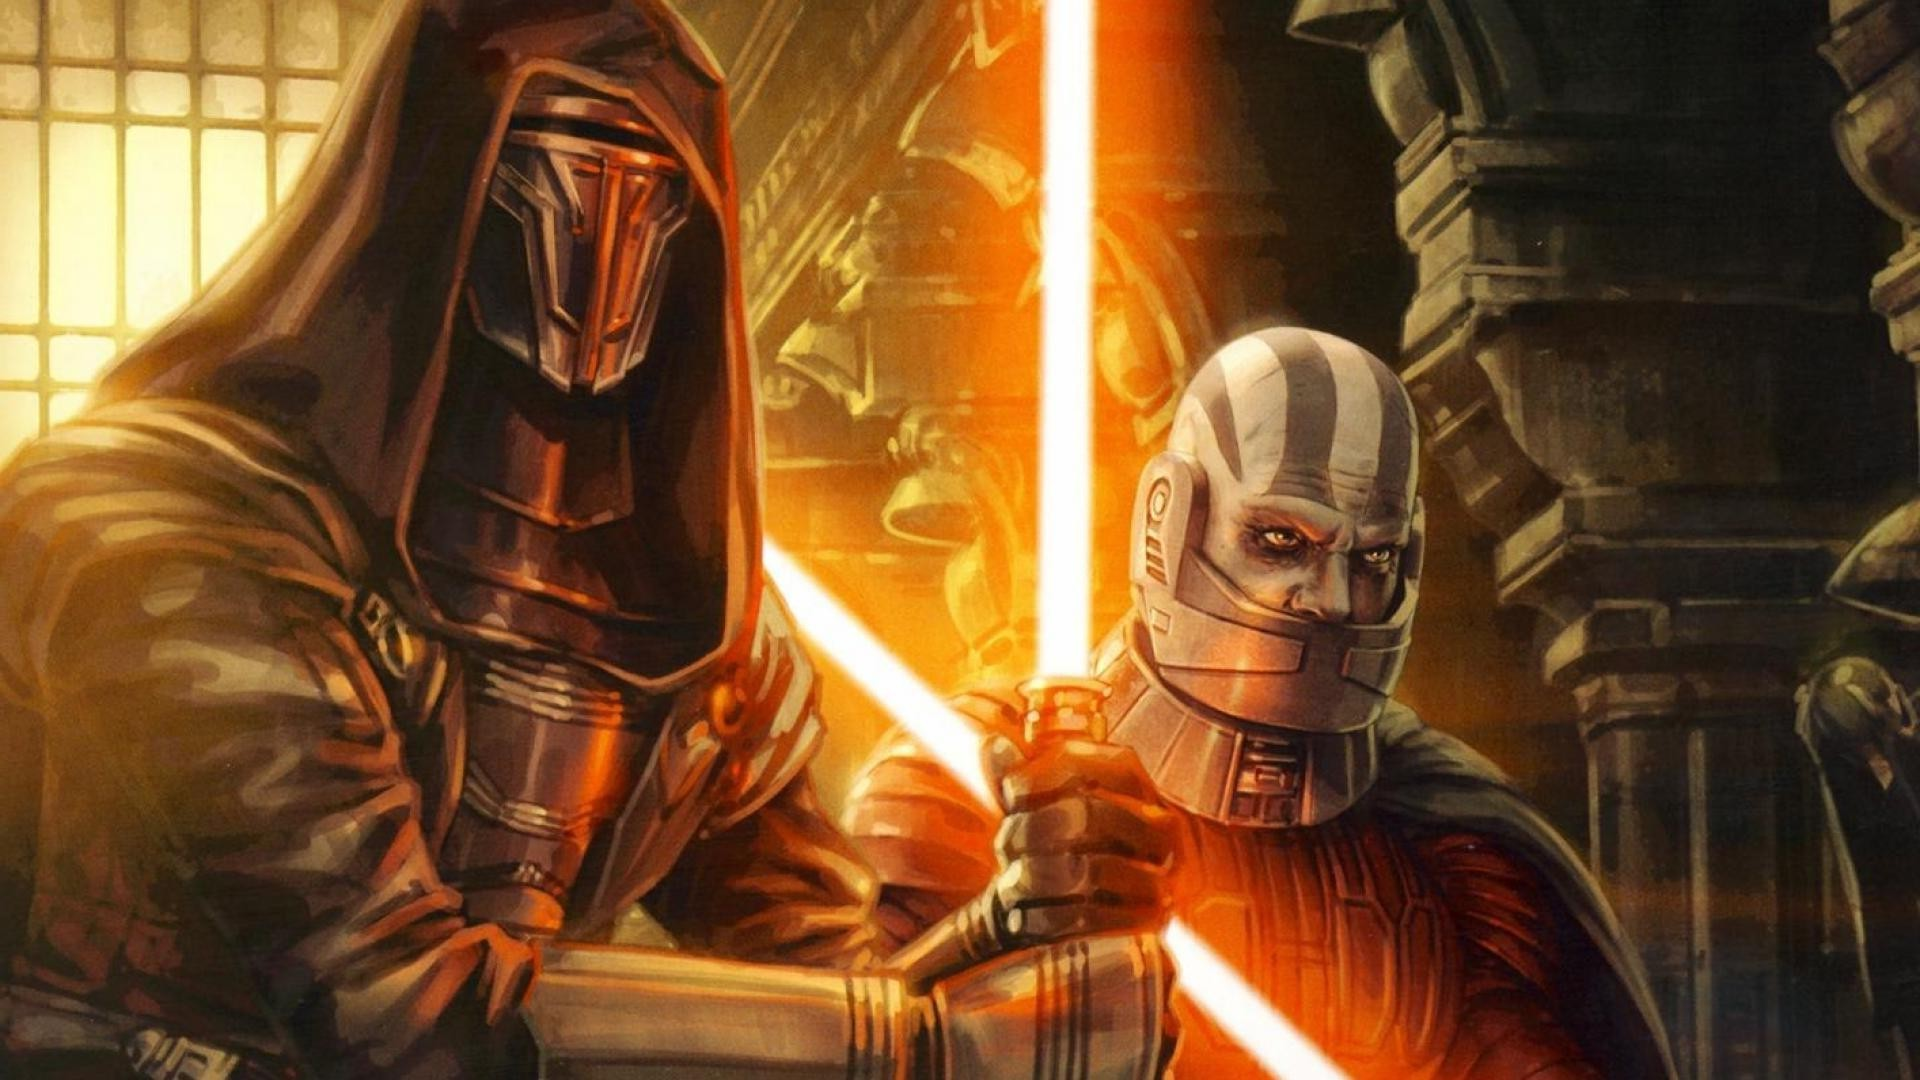 1920x1080 Darth Revan Wallpaper by Paratoxin57 on DeviantArt